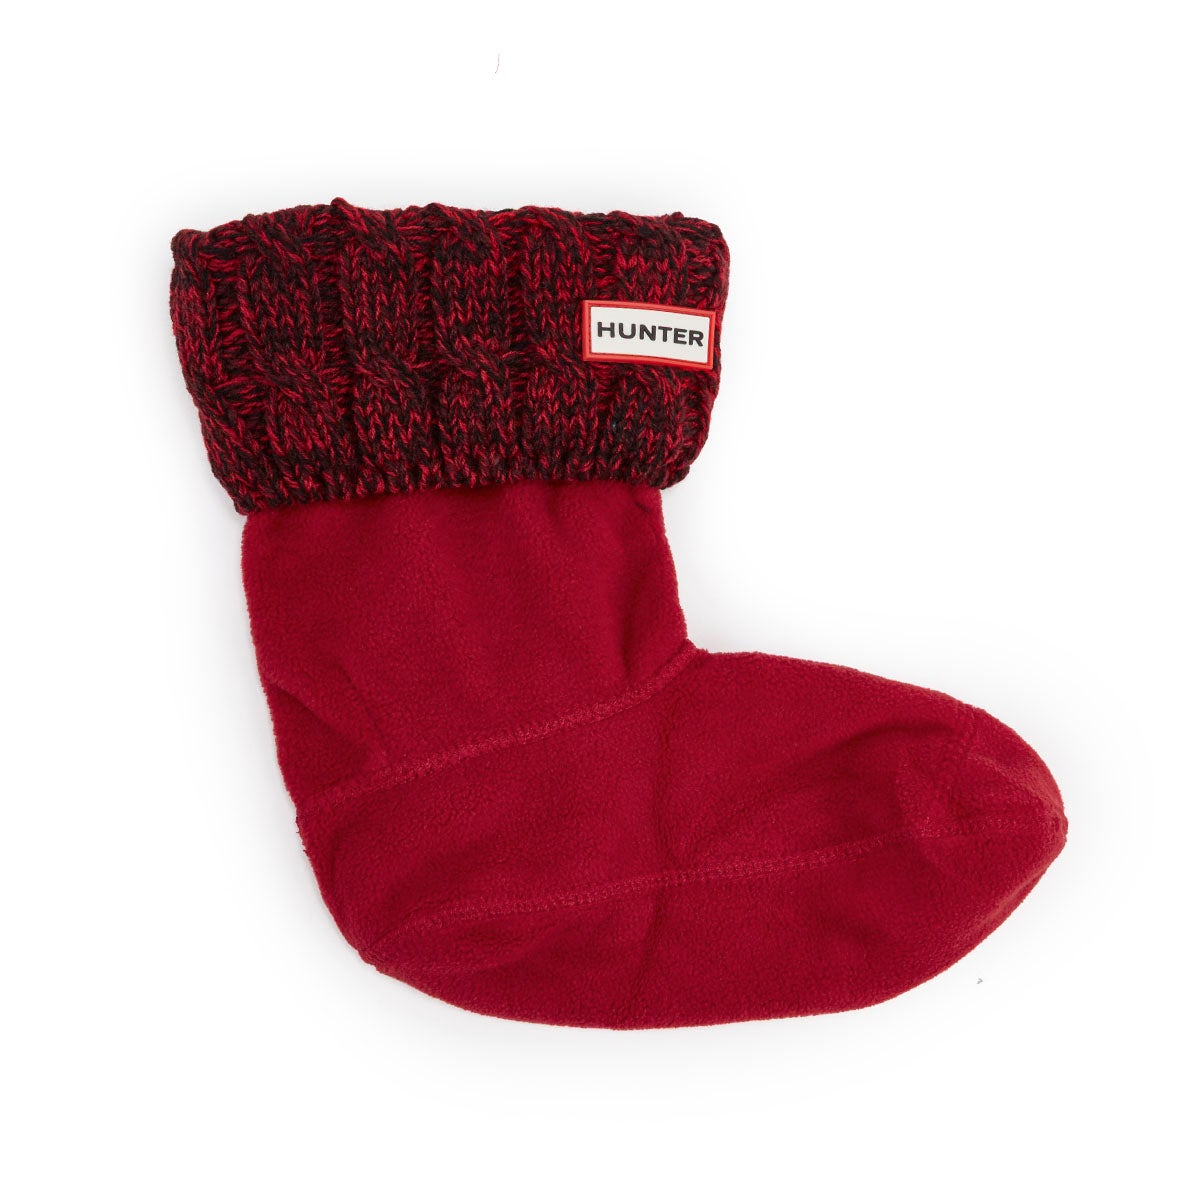 Lds 6 Stitch Cable red short boot sock